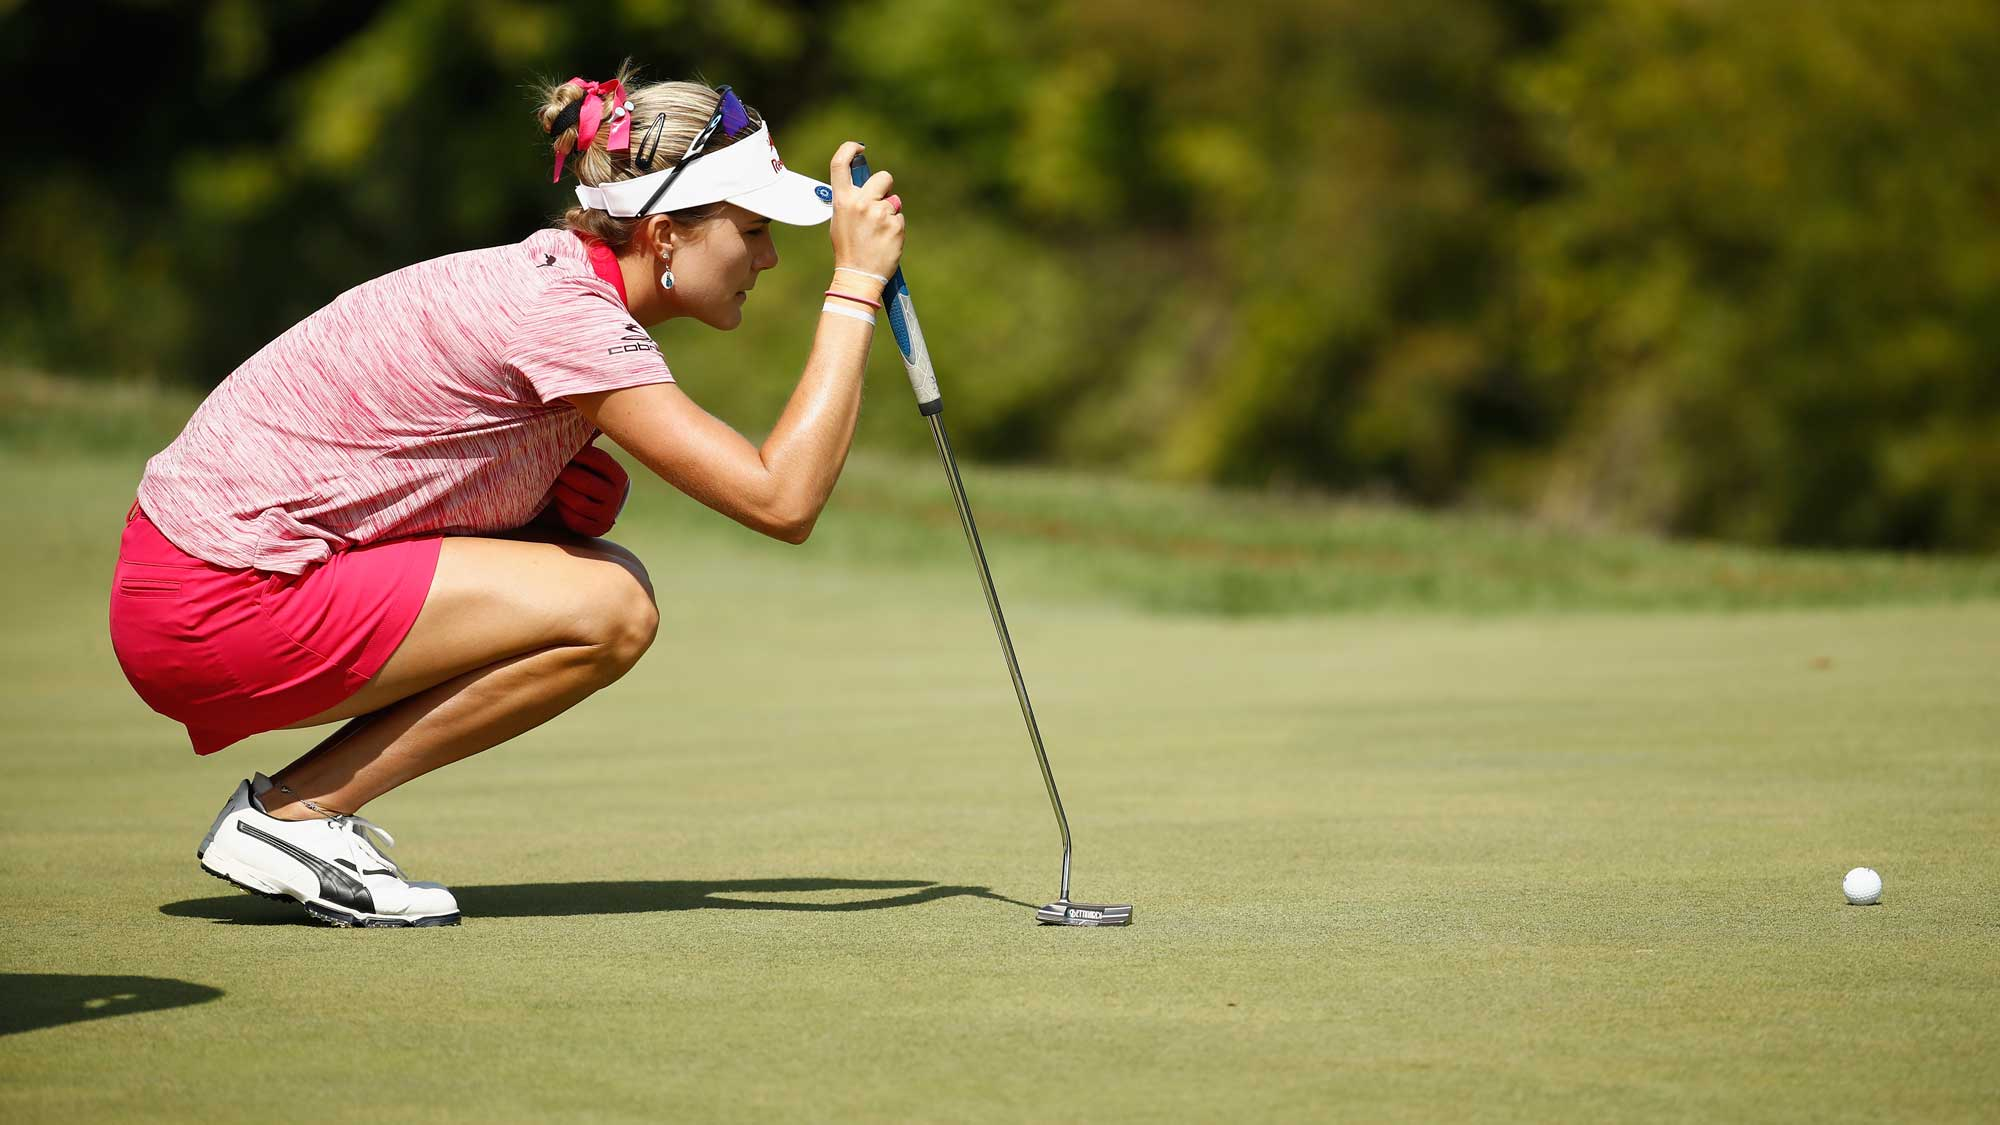 Lexi Thompson lines up her putt on the 6th hole during the second round of the Indy Women In Tech Championship-Presented By Guggenheim